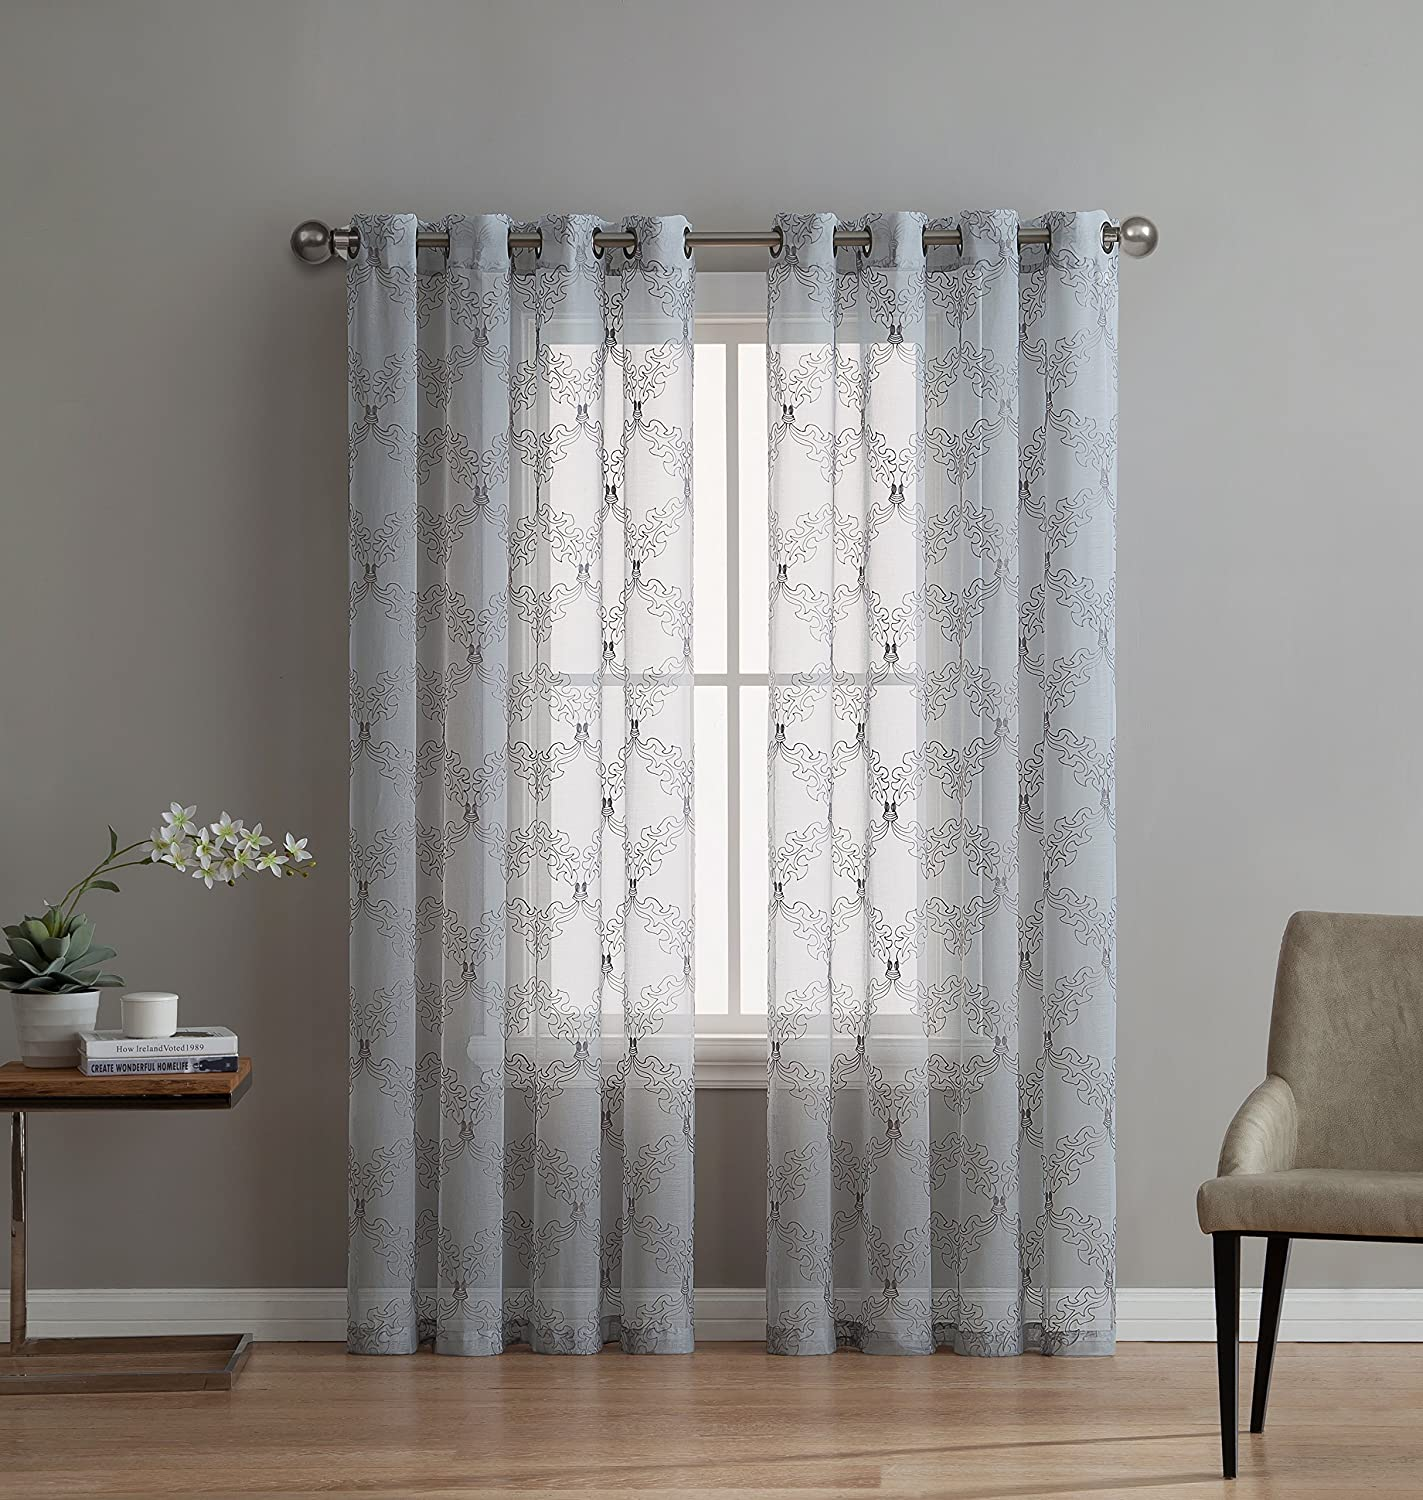 Rolled curtains - practical and stylish 50